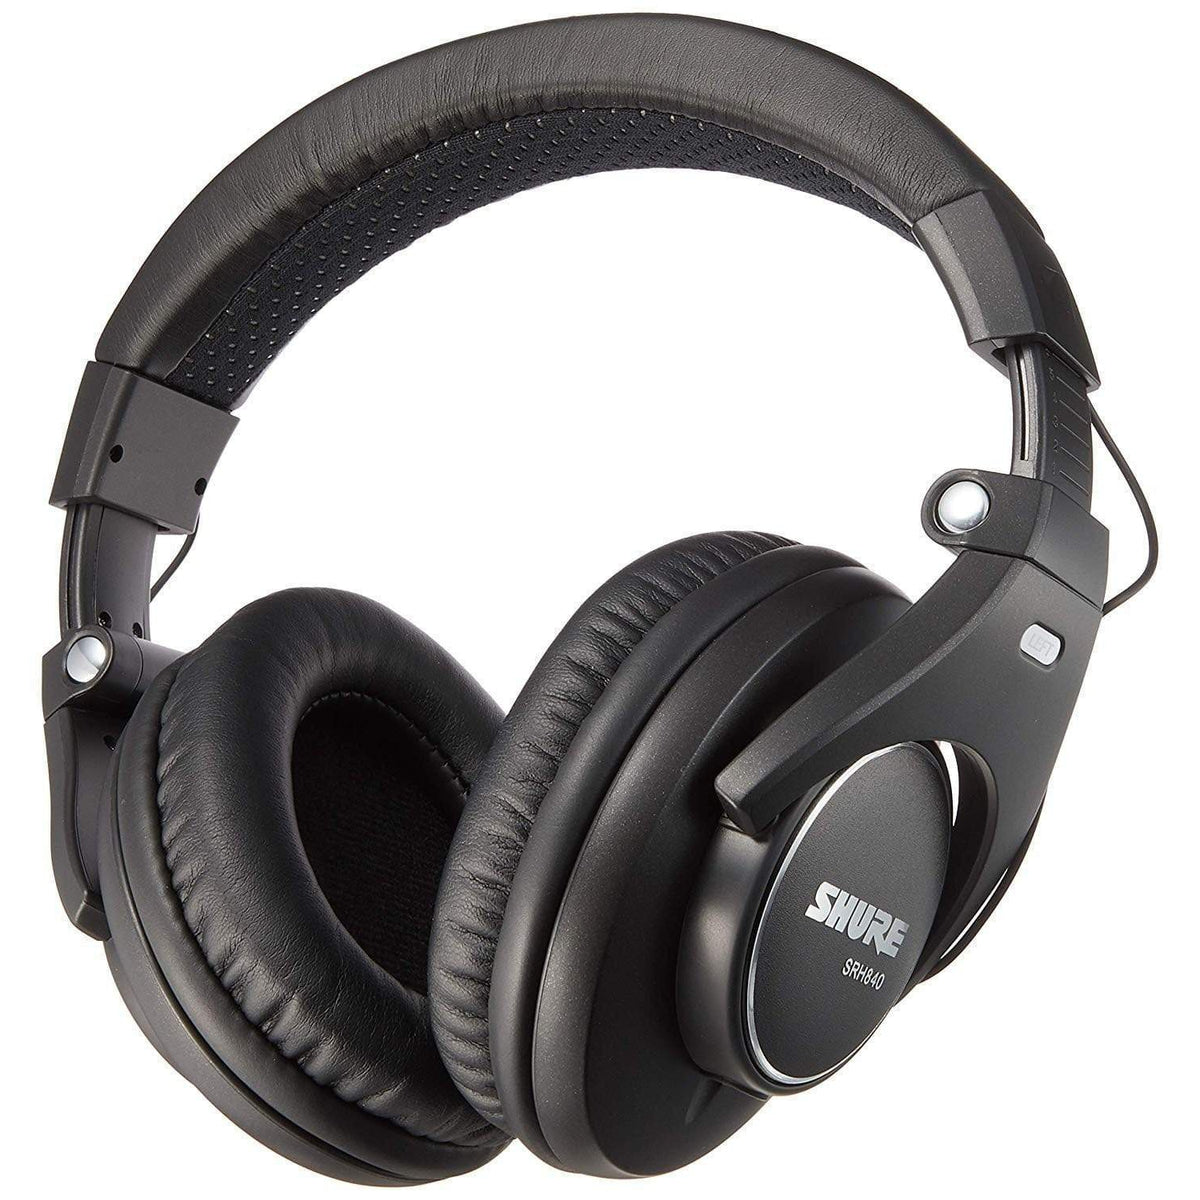 Shure Headphones Shure SRH840 Closed-back Pro Studio Monitor Headphones